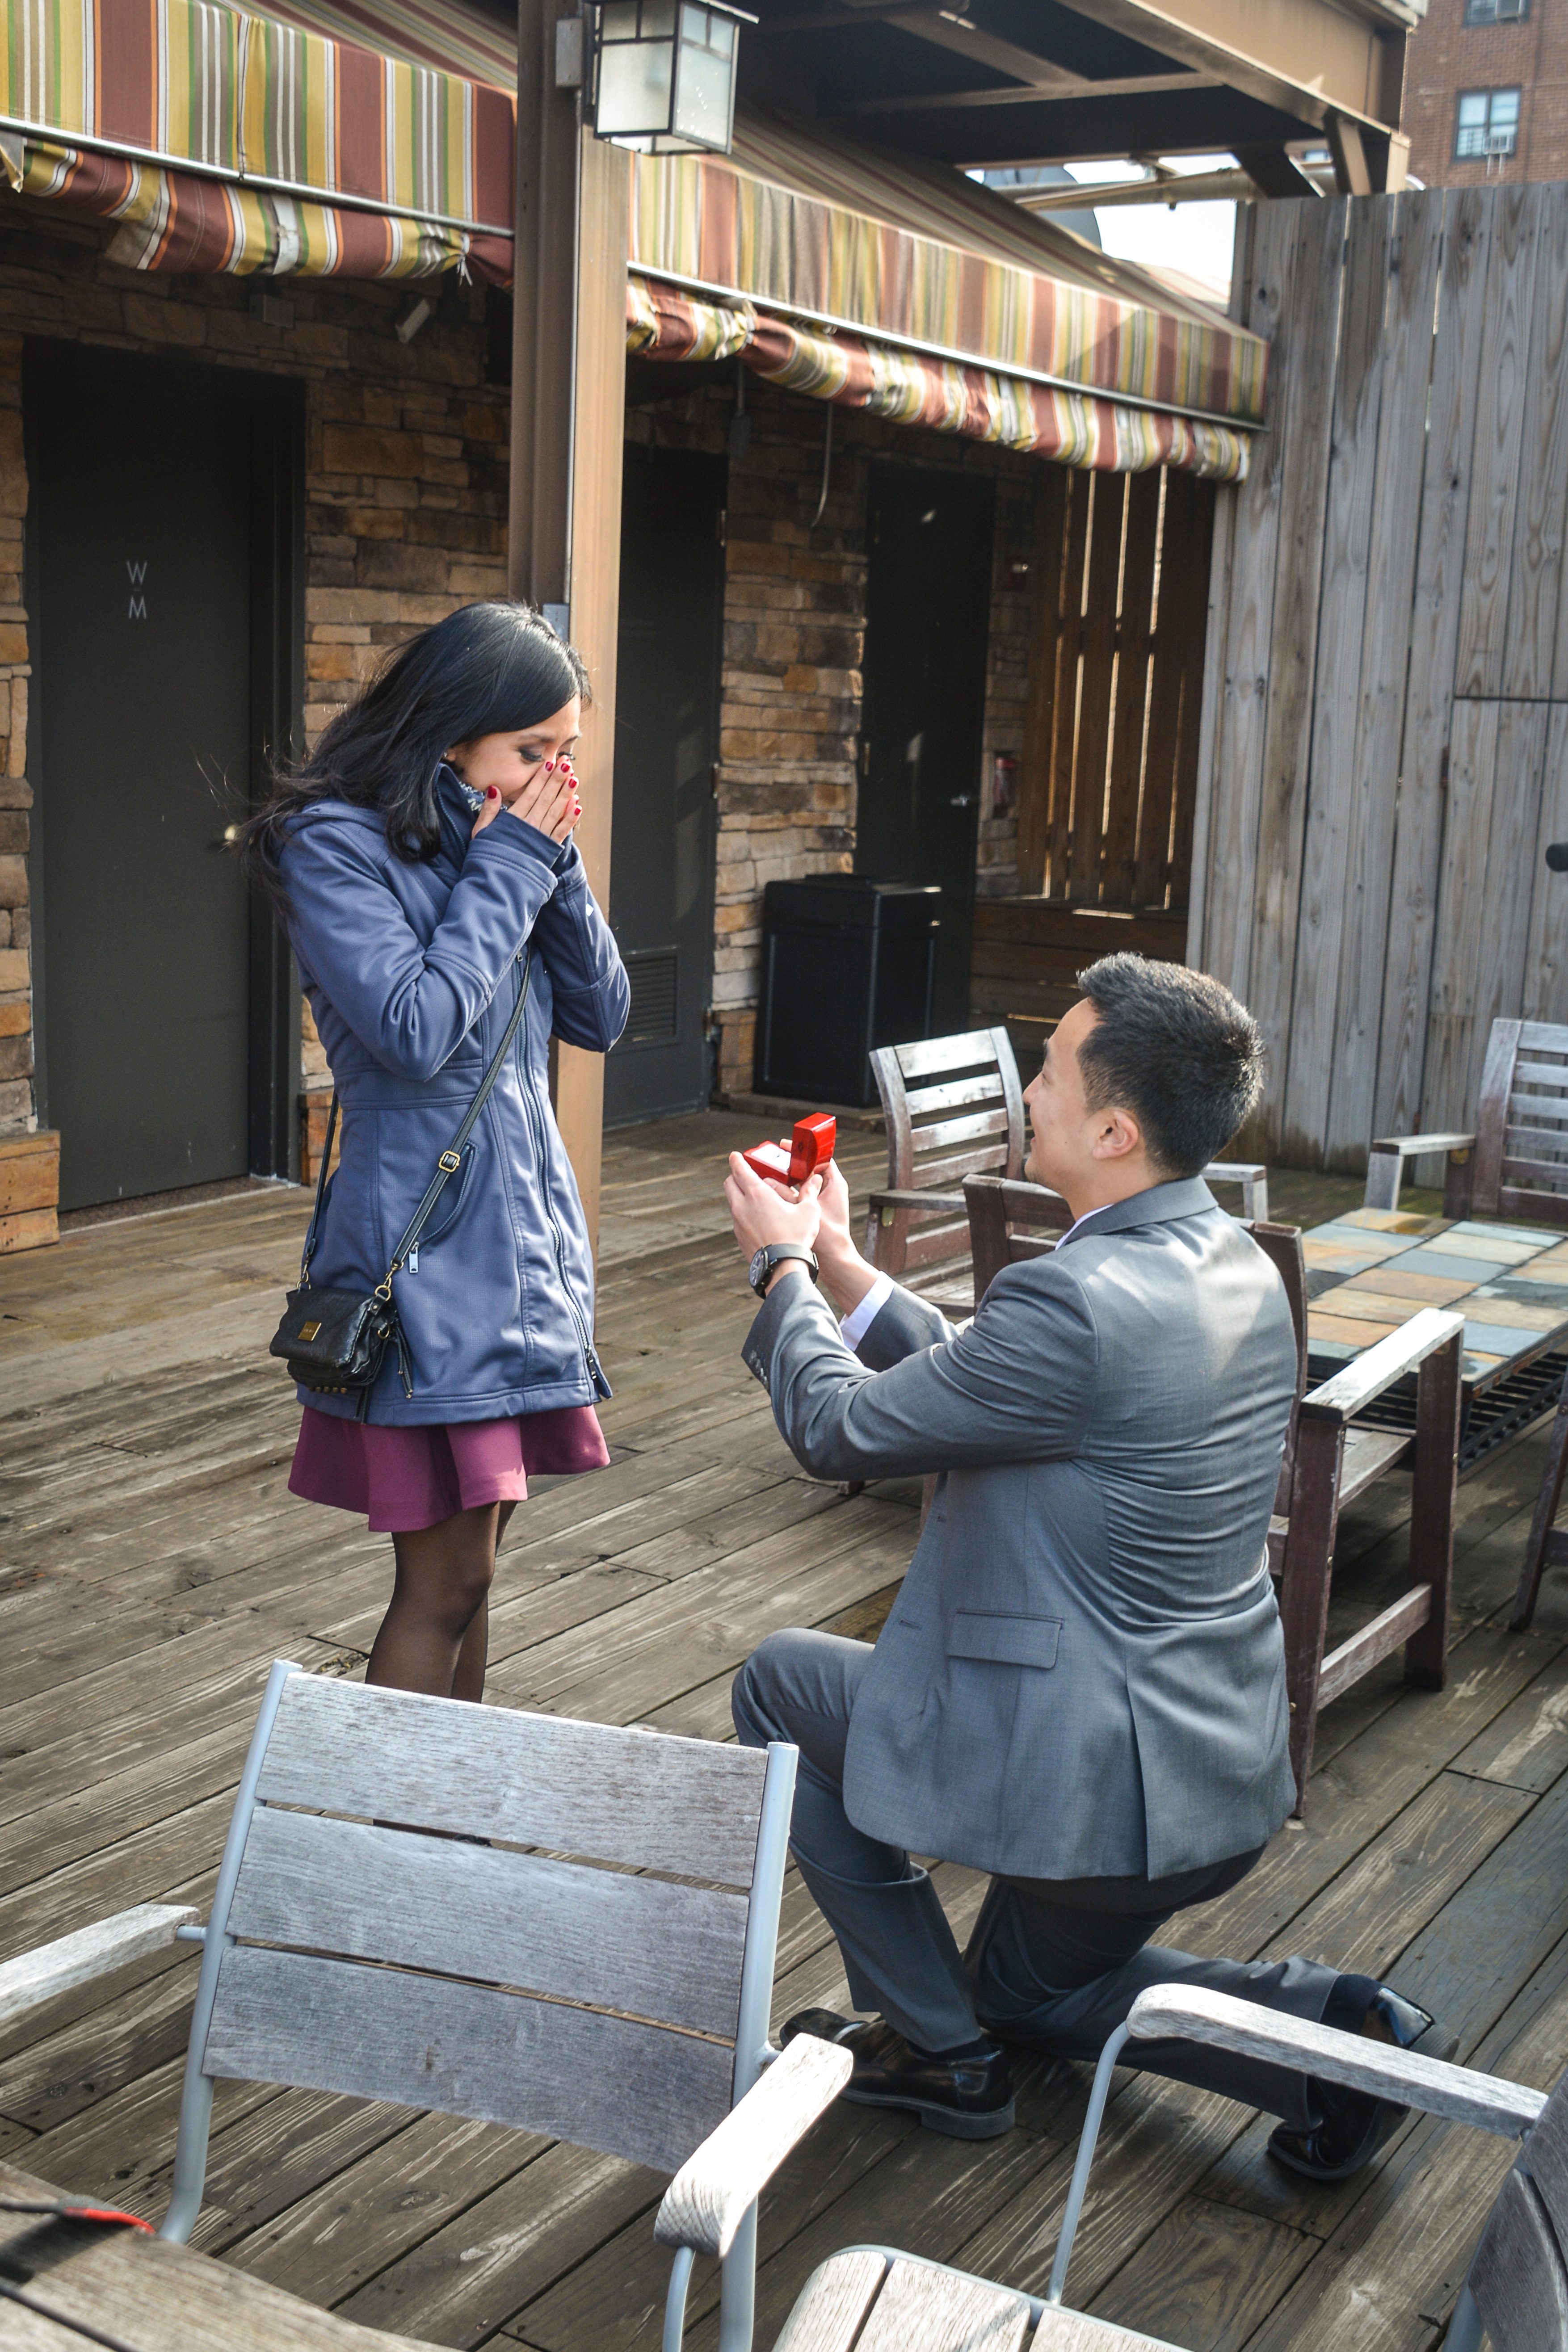 Image 3 of Jacqueline + James: Manhattan Marriage Proposal